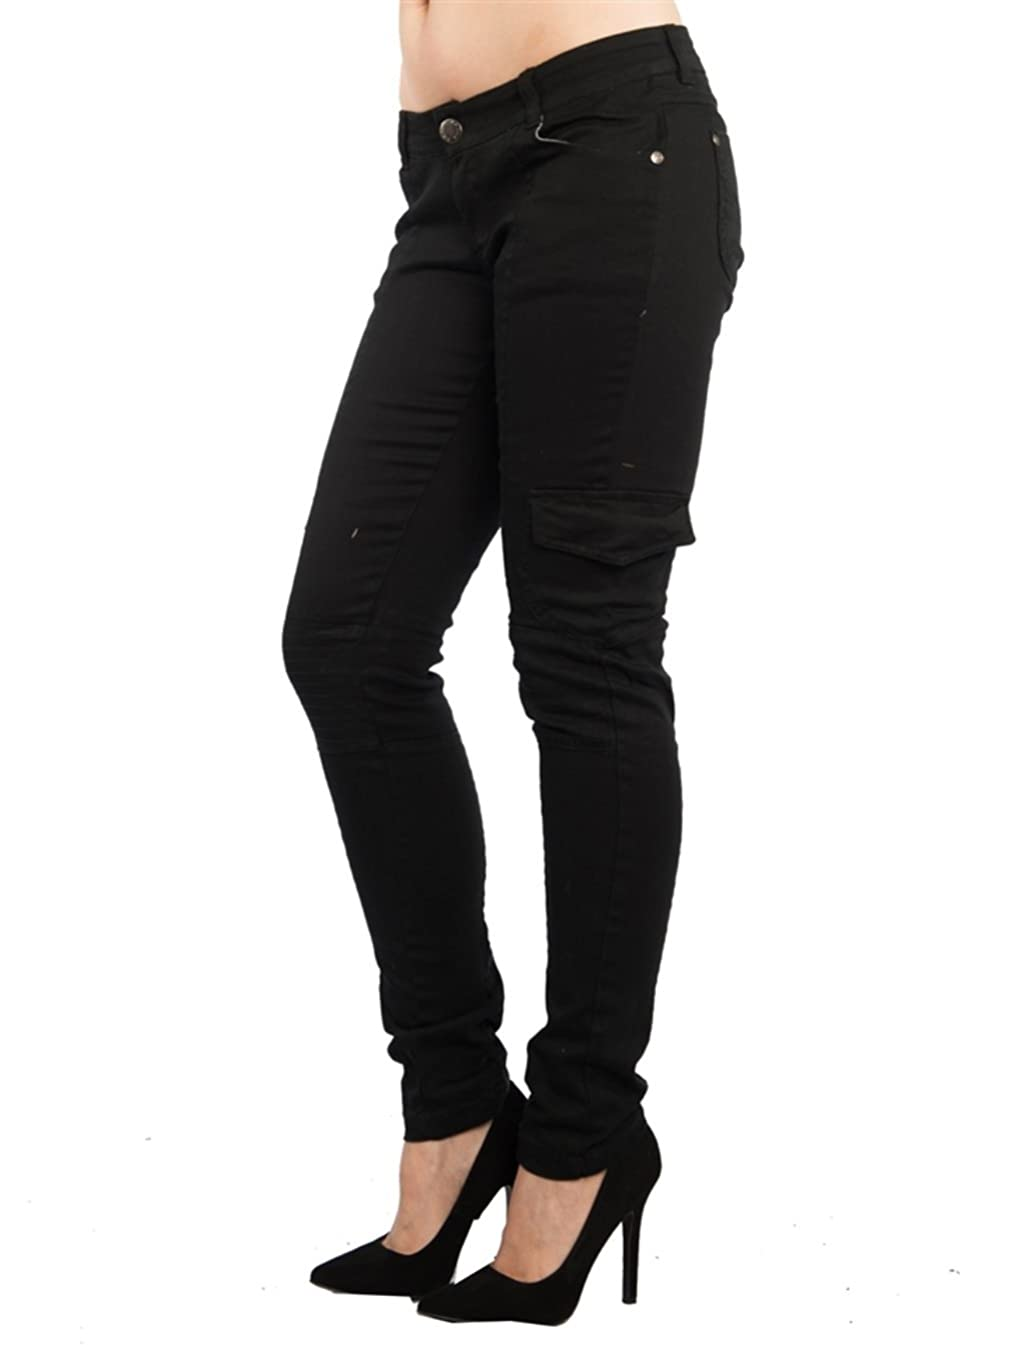 Jack David/Wax Jeans/Lucy/B.B Jeans Women's Cargo Pants Sexy Stretch Solid Casual Skinny